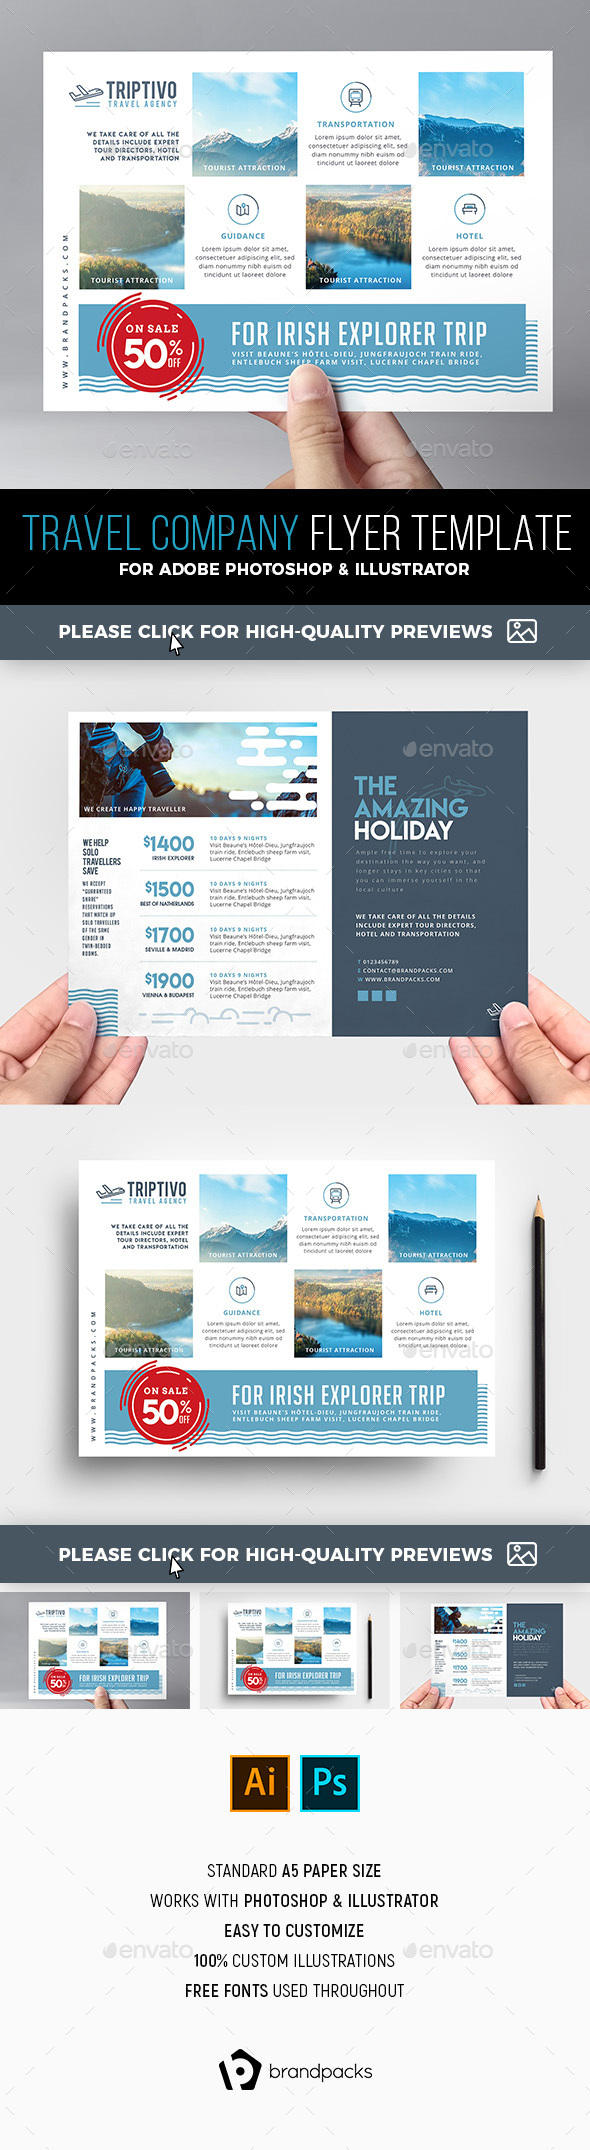 Travel Company Flyer Template - Corporate Flyers